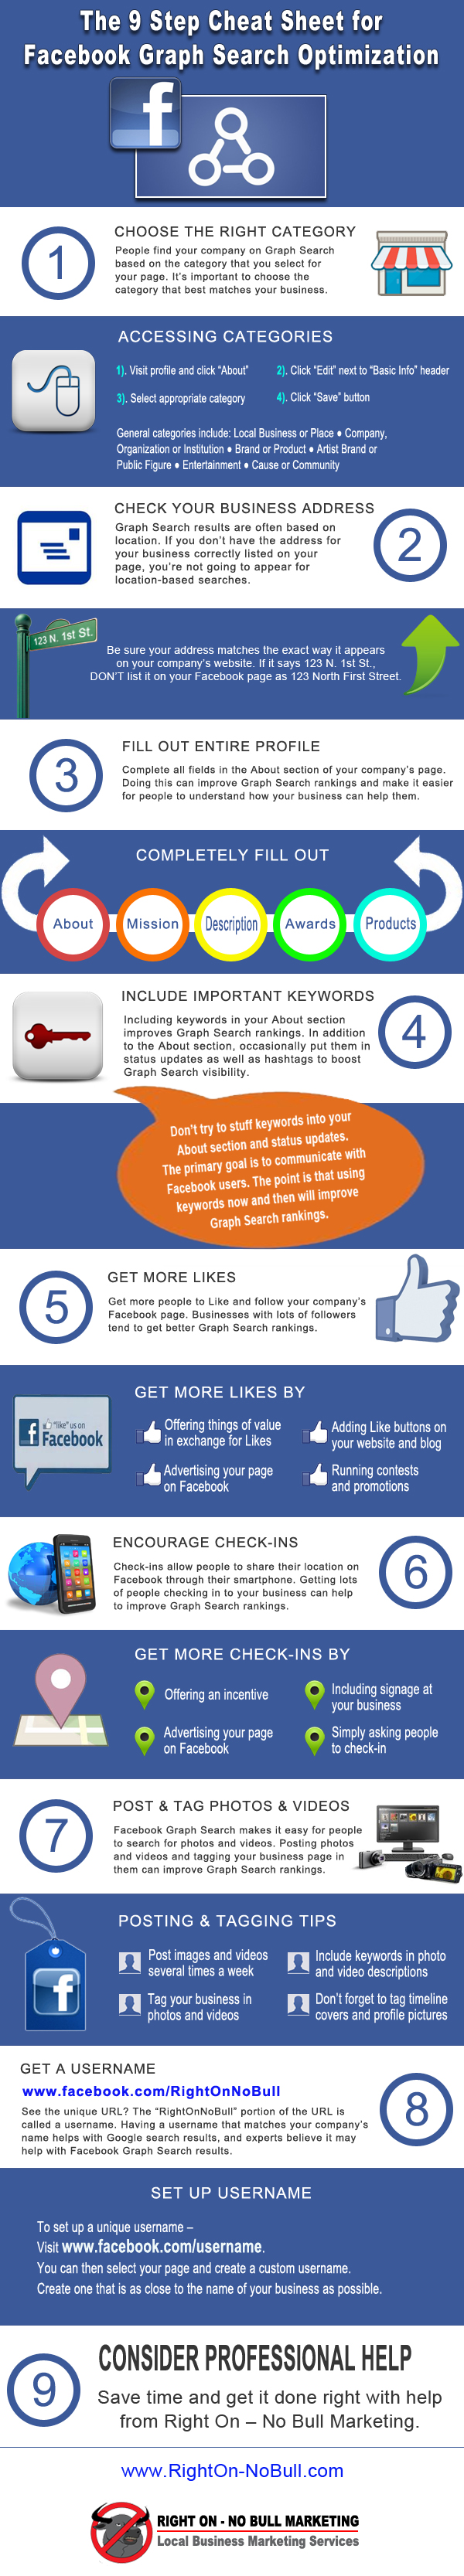 Facebook, Graph Search, optimization, infographic,